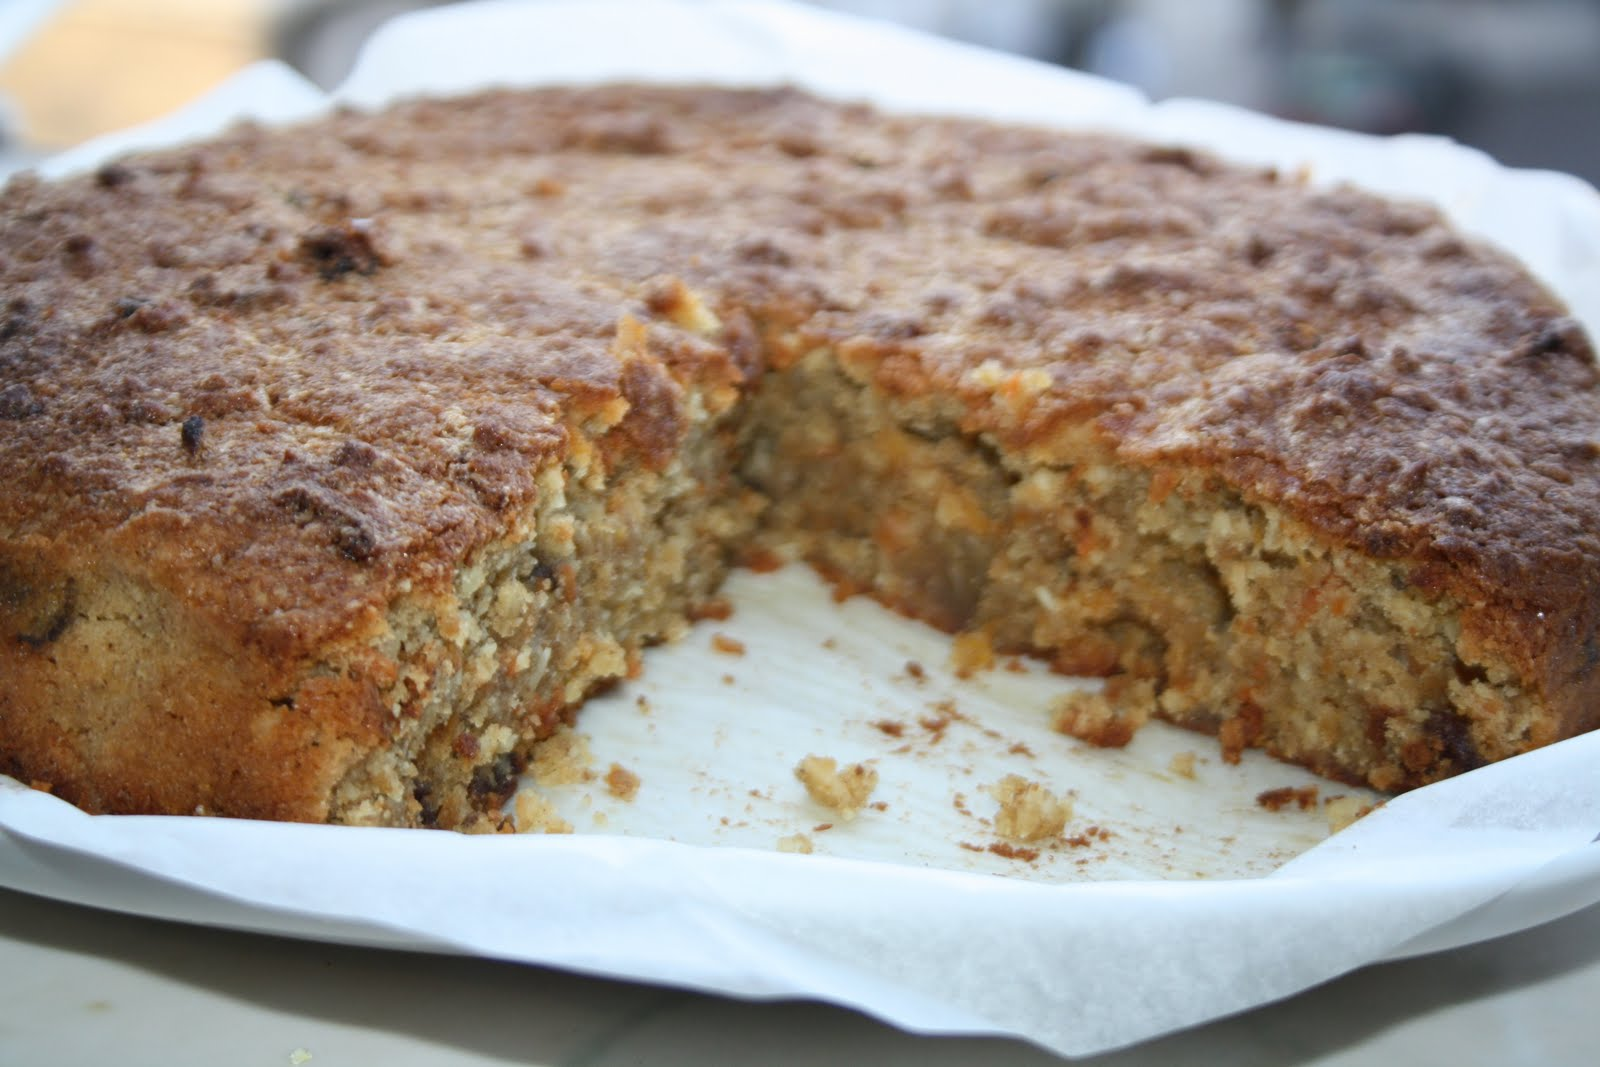 ... Passions: RECIPE: Flourless Carrot, Pistachio and Coconut Cake